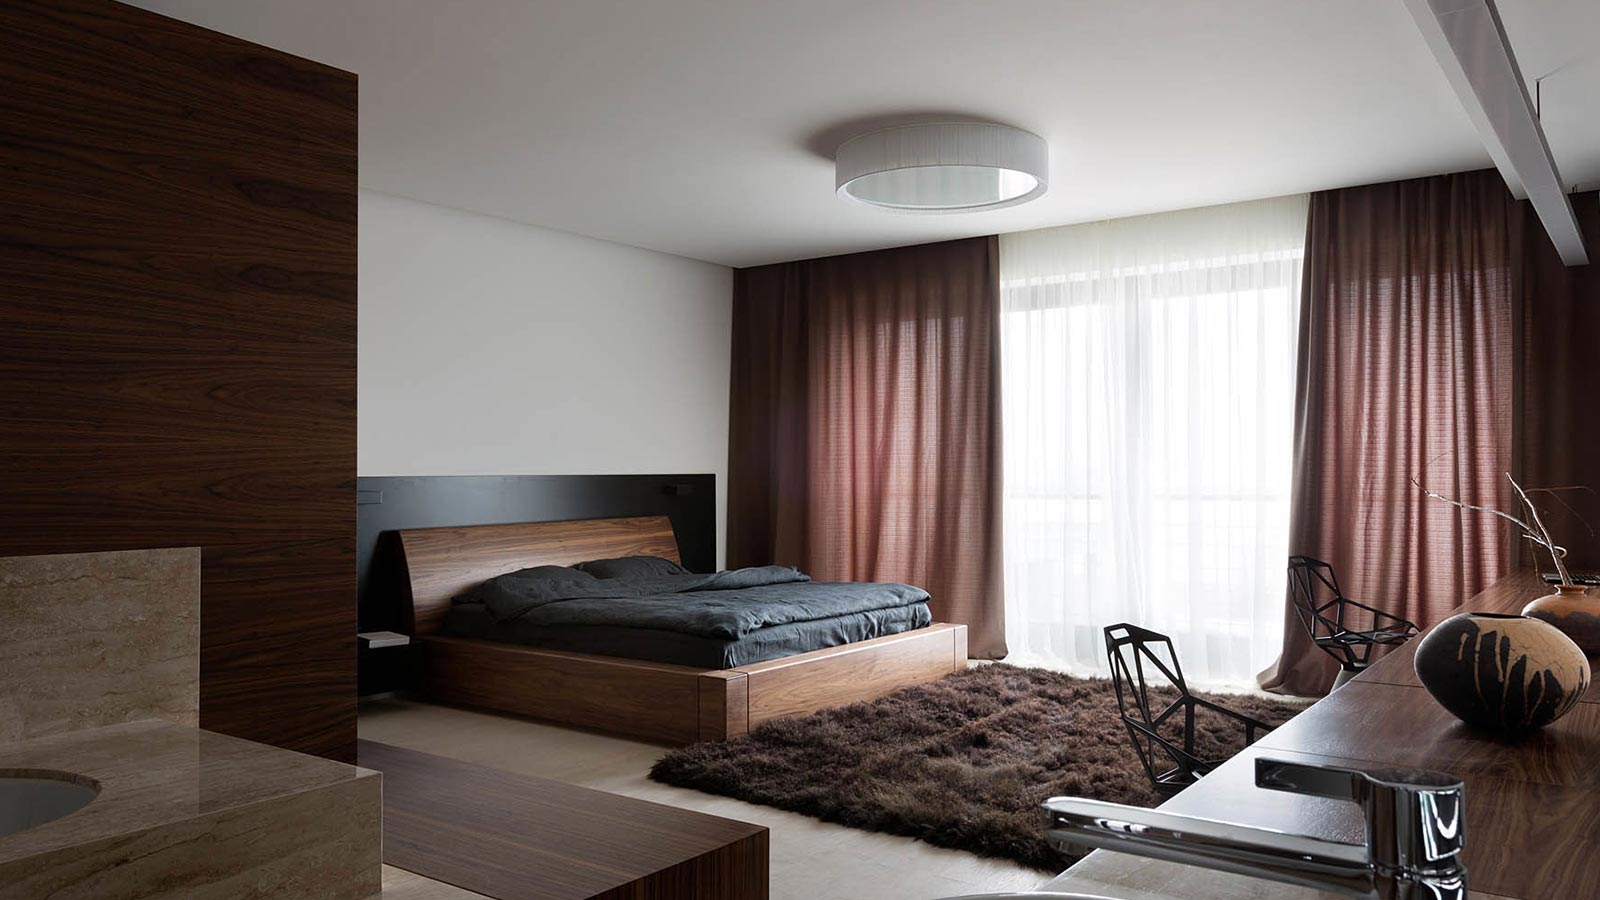 How to decorate your bedroom: design tricks to make it look more expensive